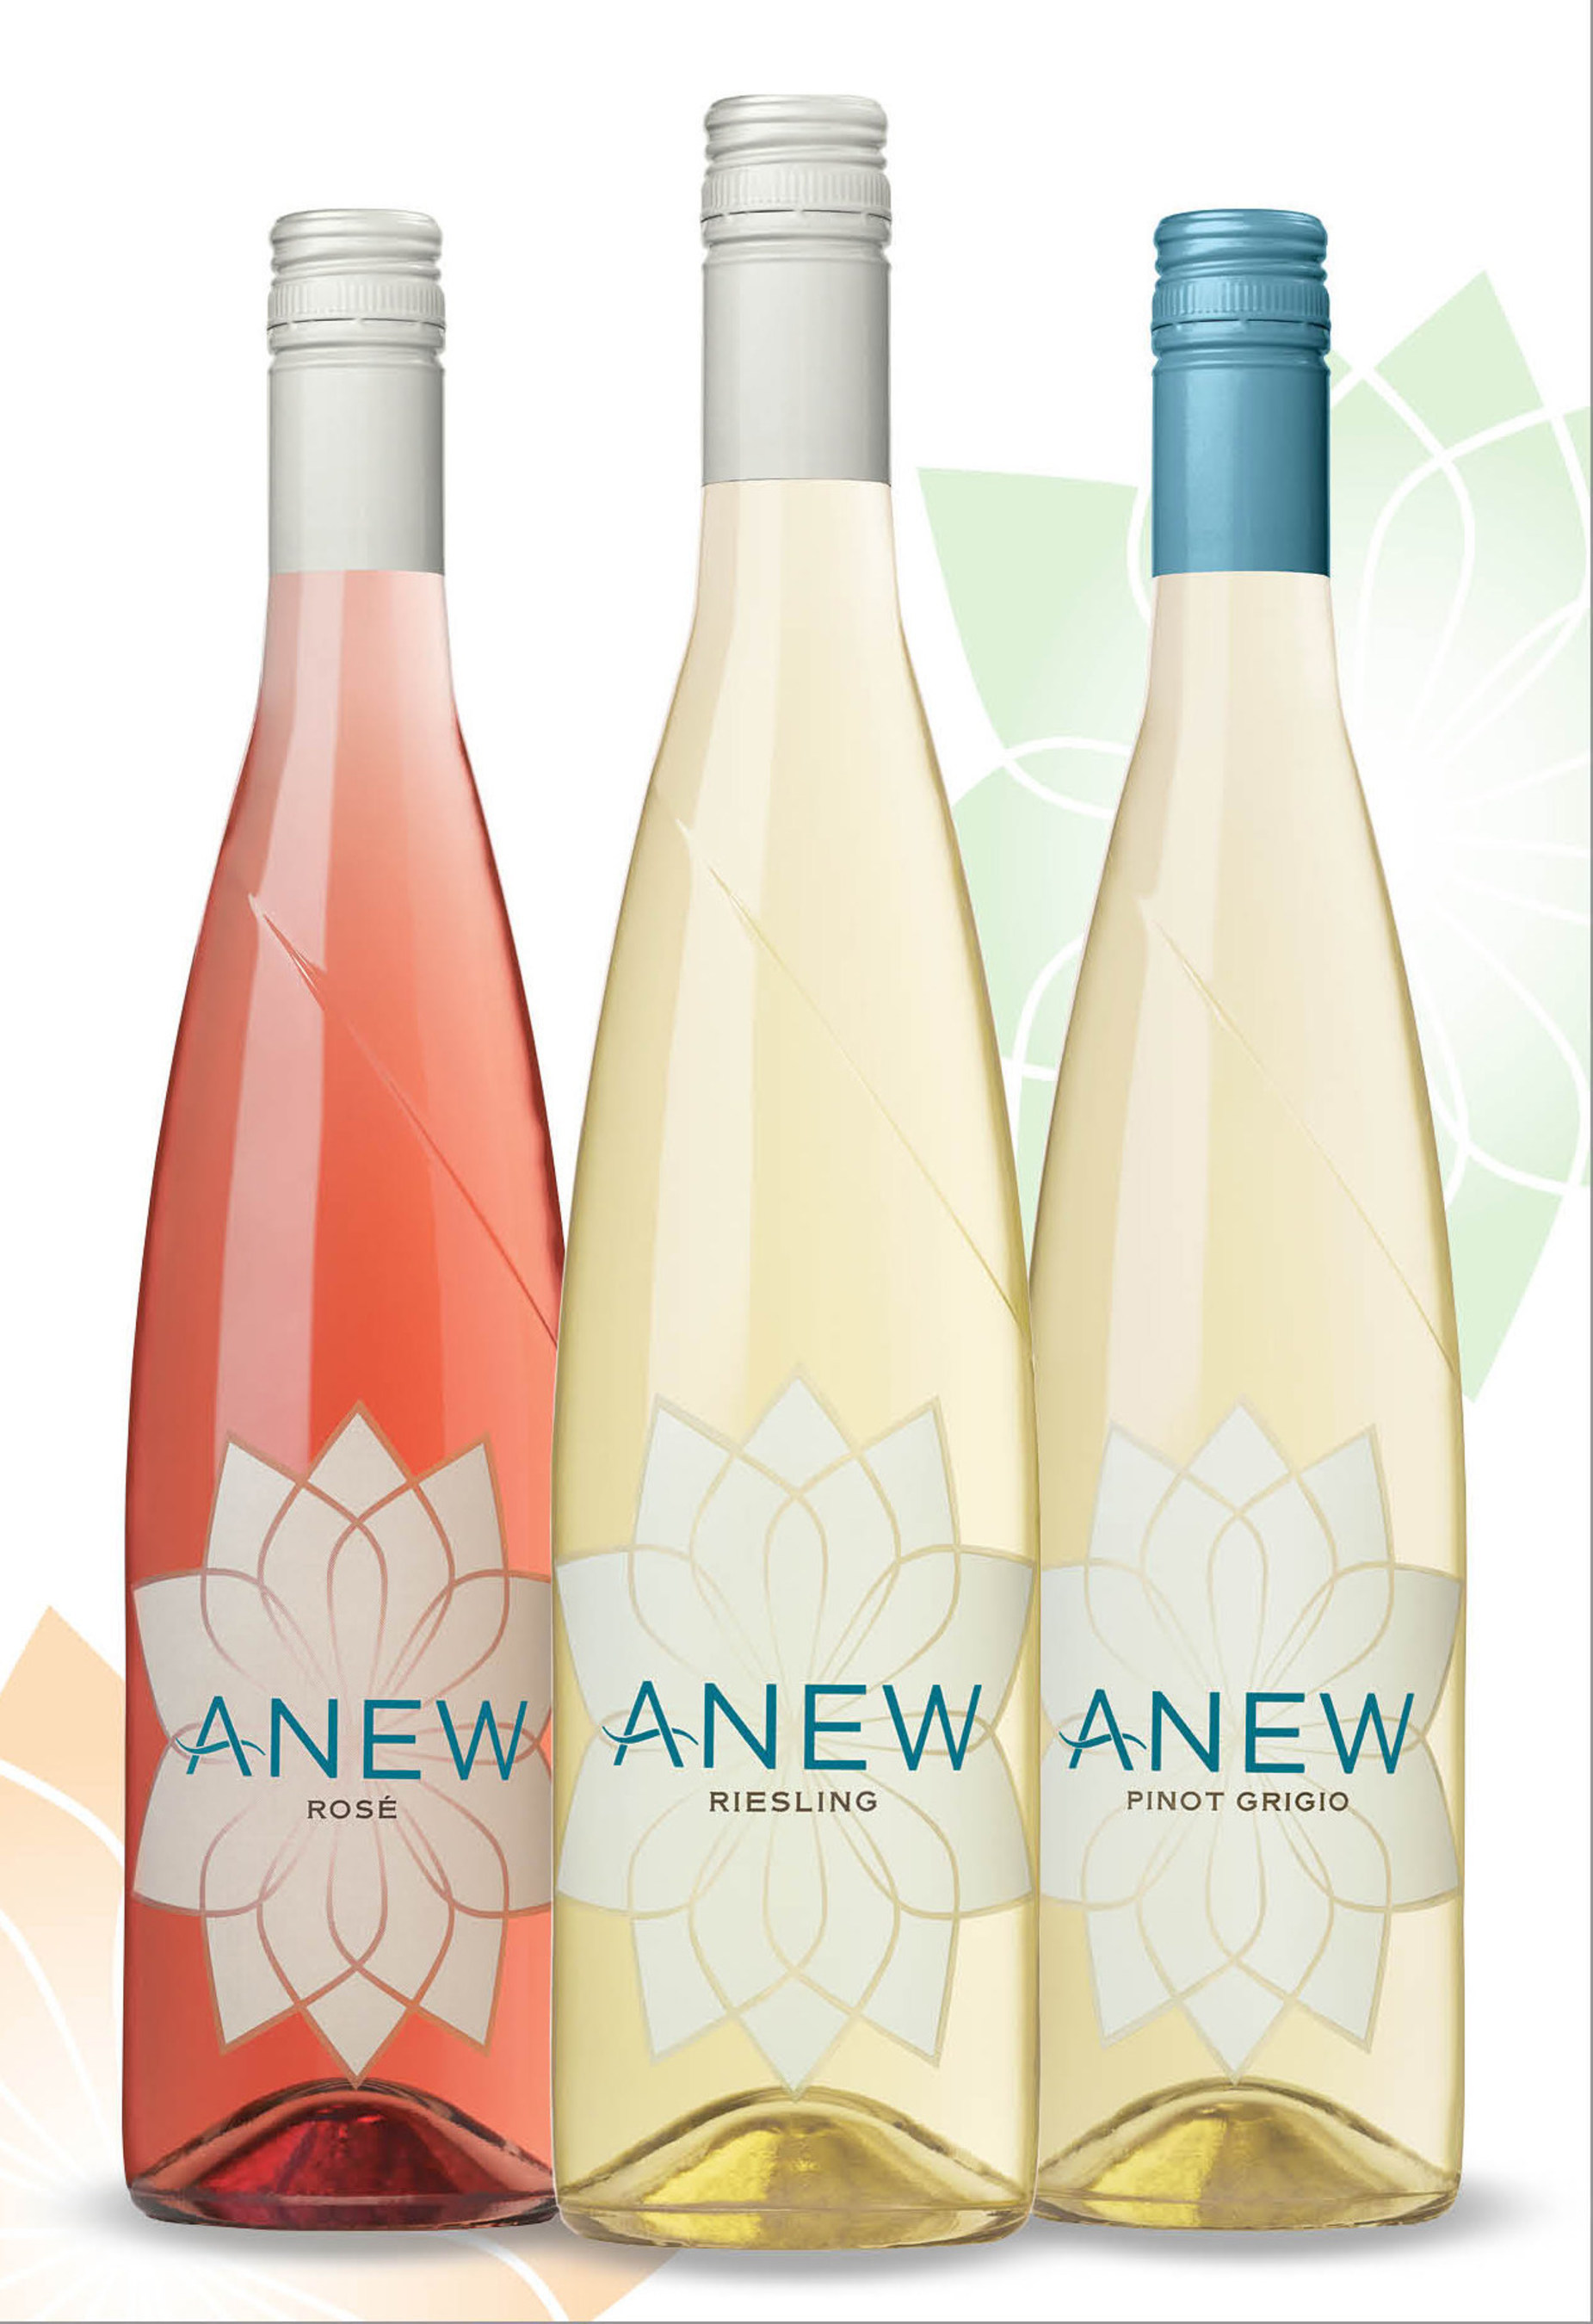 Washington's ANEW wines add a refreshing Pinot Grigio and a flavorful Rose to its varietal line.